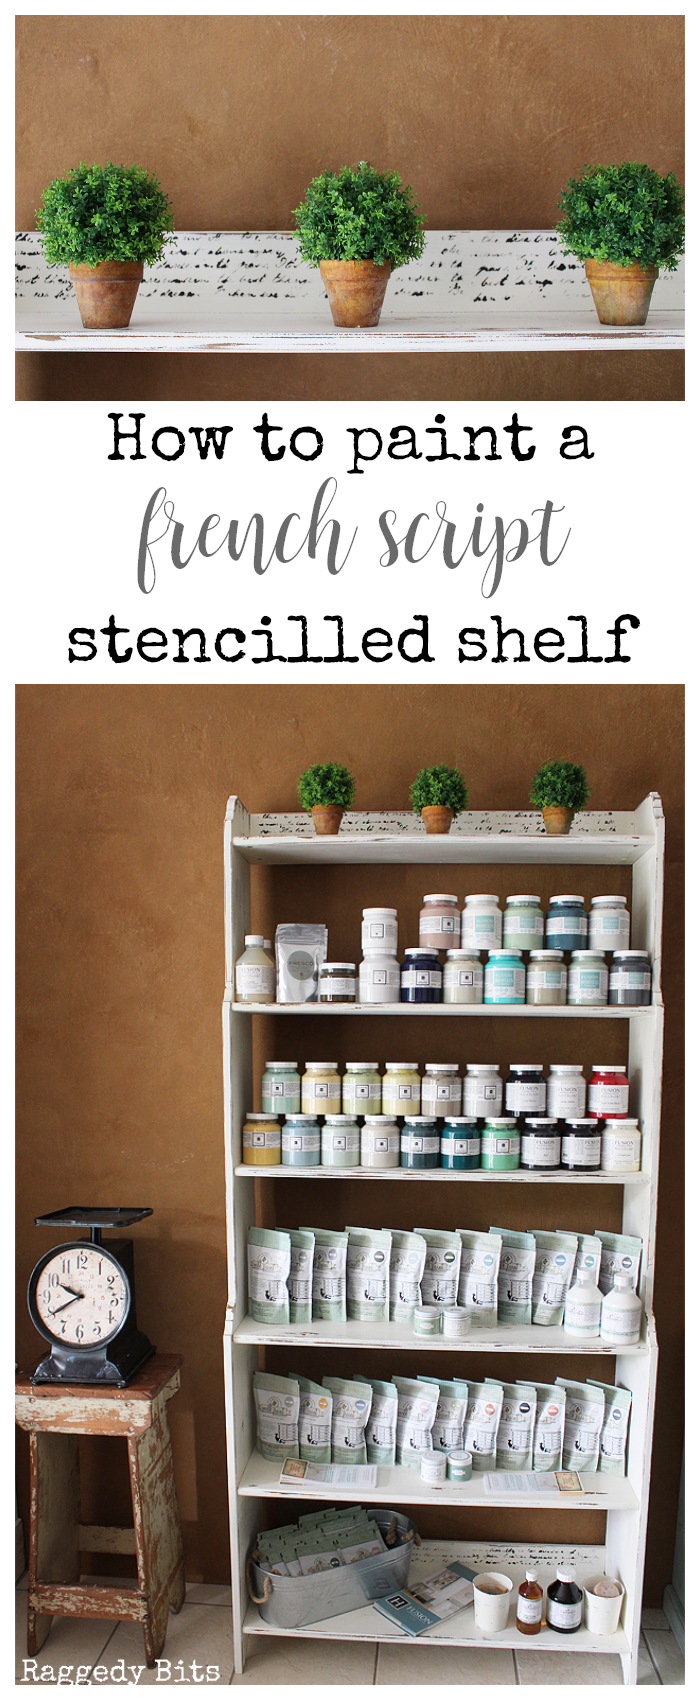 Sharing how to paint a French Script Stencilled Shelf from a roadside find and a few coats of Miss Mustard Seed Milk Paint - Farmhouse White | www.raggedy-bits.com | #missmustardseed #paintedfurniture #DIY #raggedybits #distress #chippy